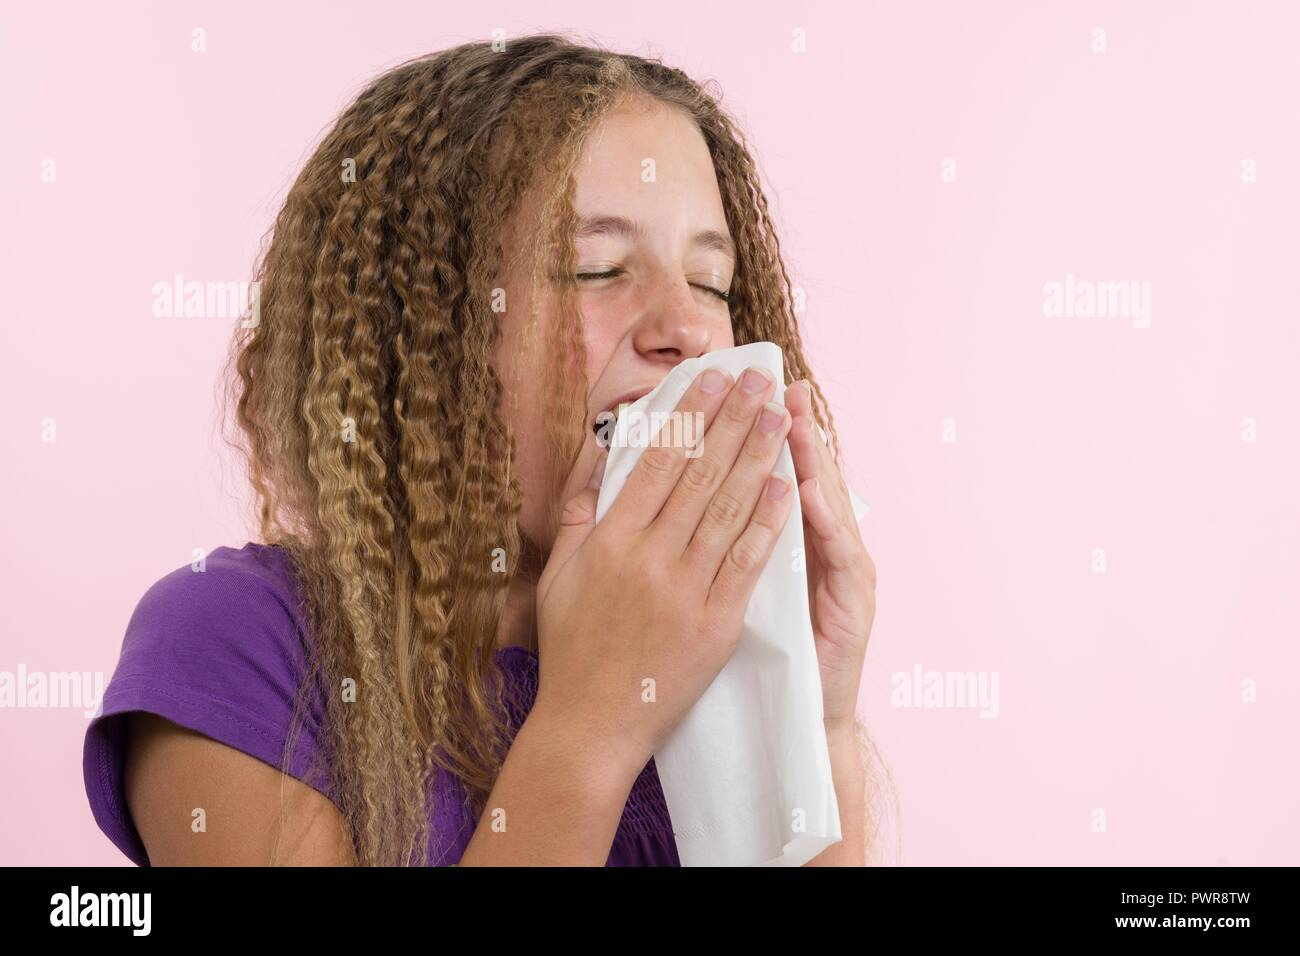 Allergic rhinitis on a summer vacation in a teenage girl's journey. A girl in a T-shirt on a pink background sneezes into a napkin - Stock Image